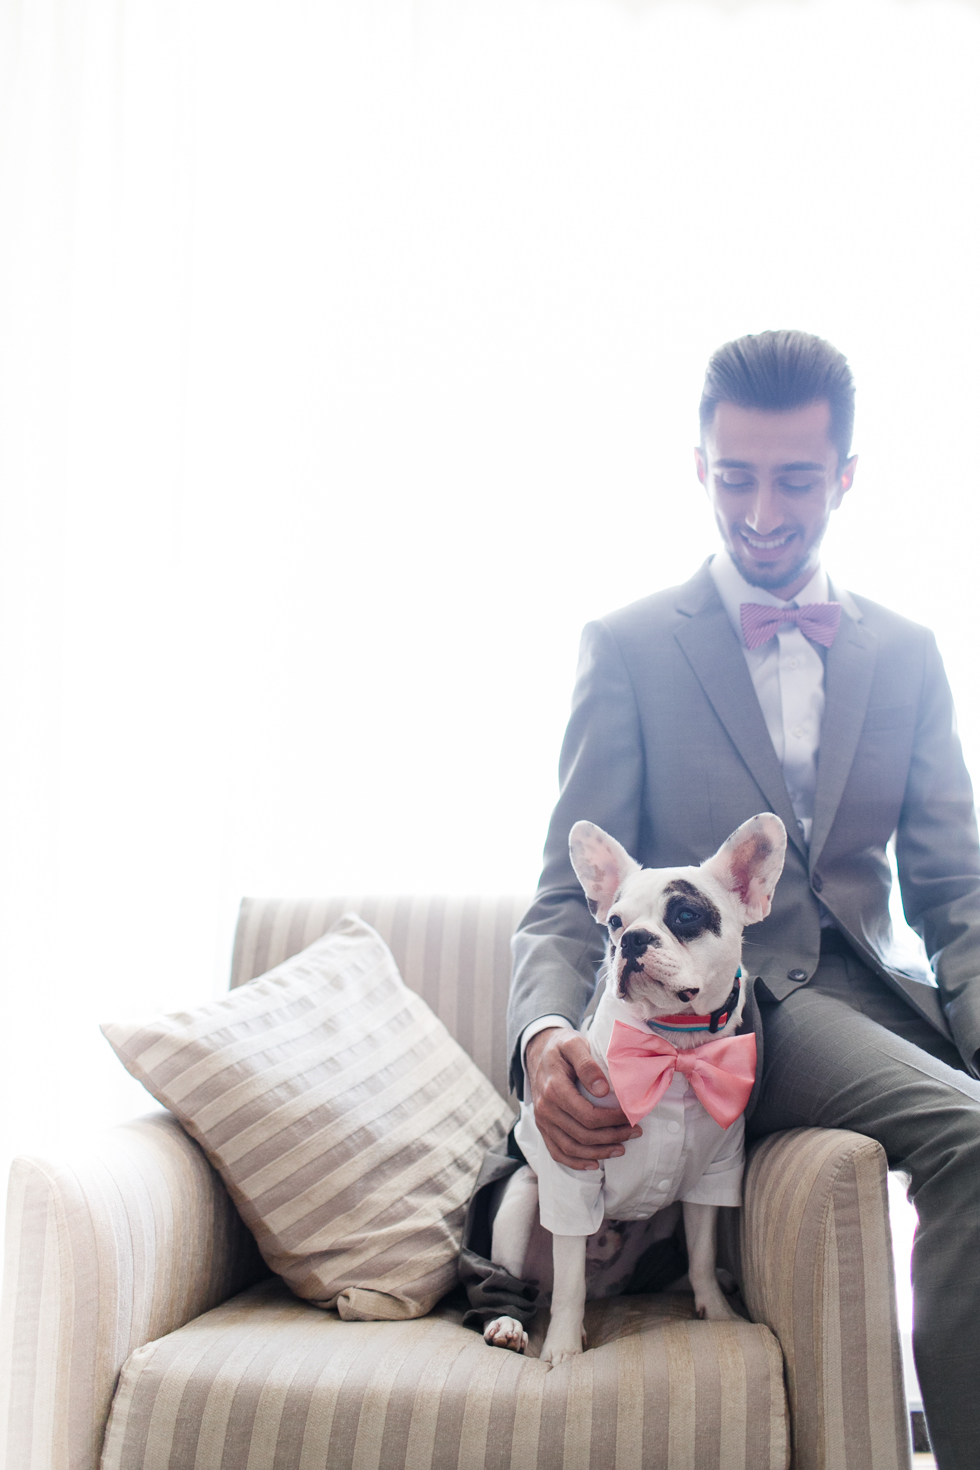 Oh my, what a charming bistro wedding with two charming grooms and their cute dogs (Photos by Frankie & Marilia) (11)